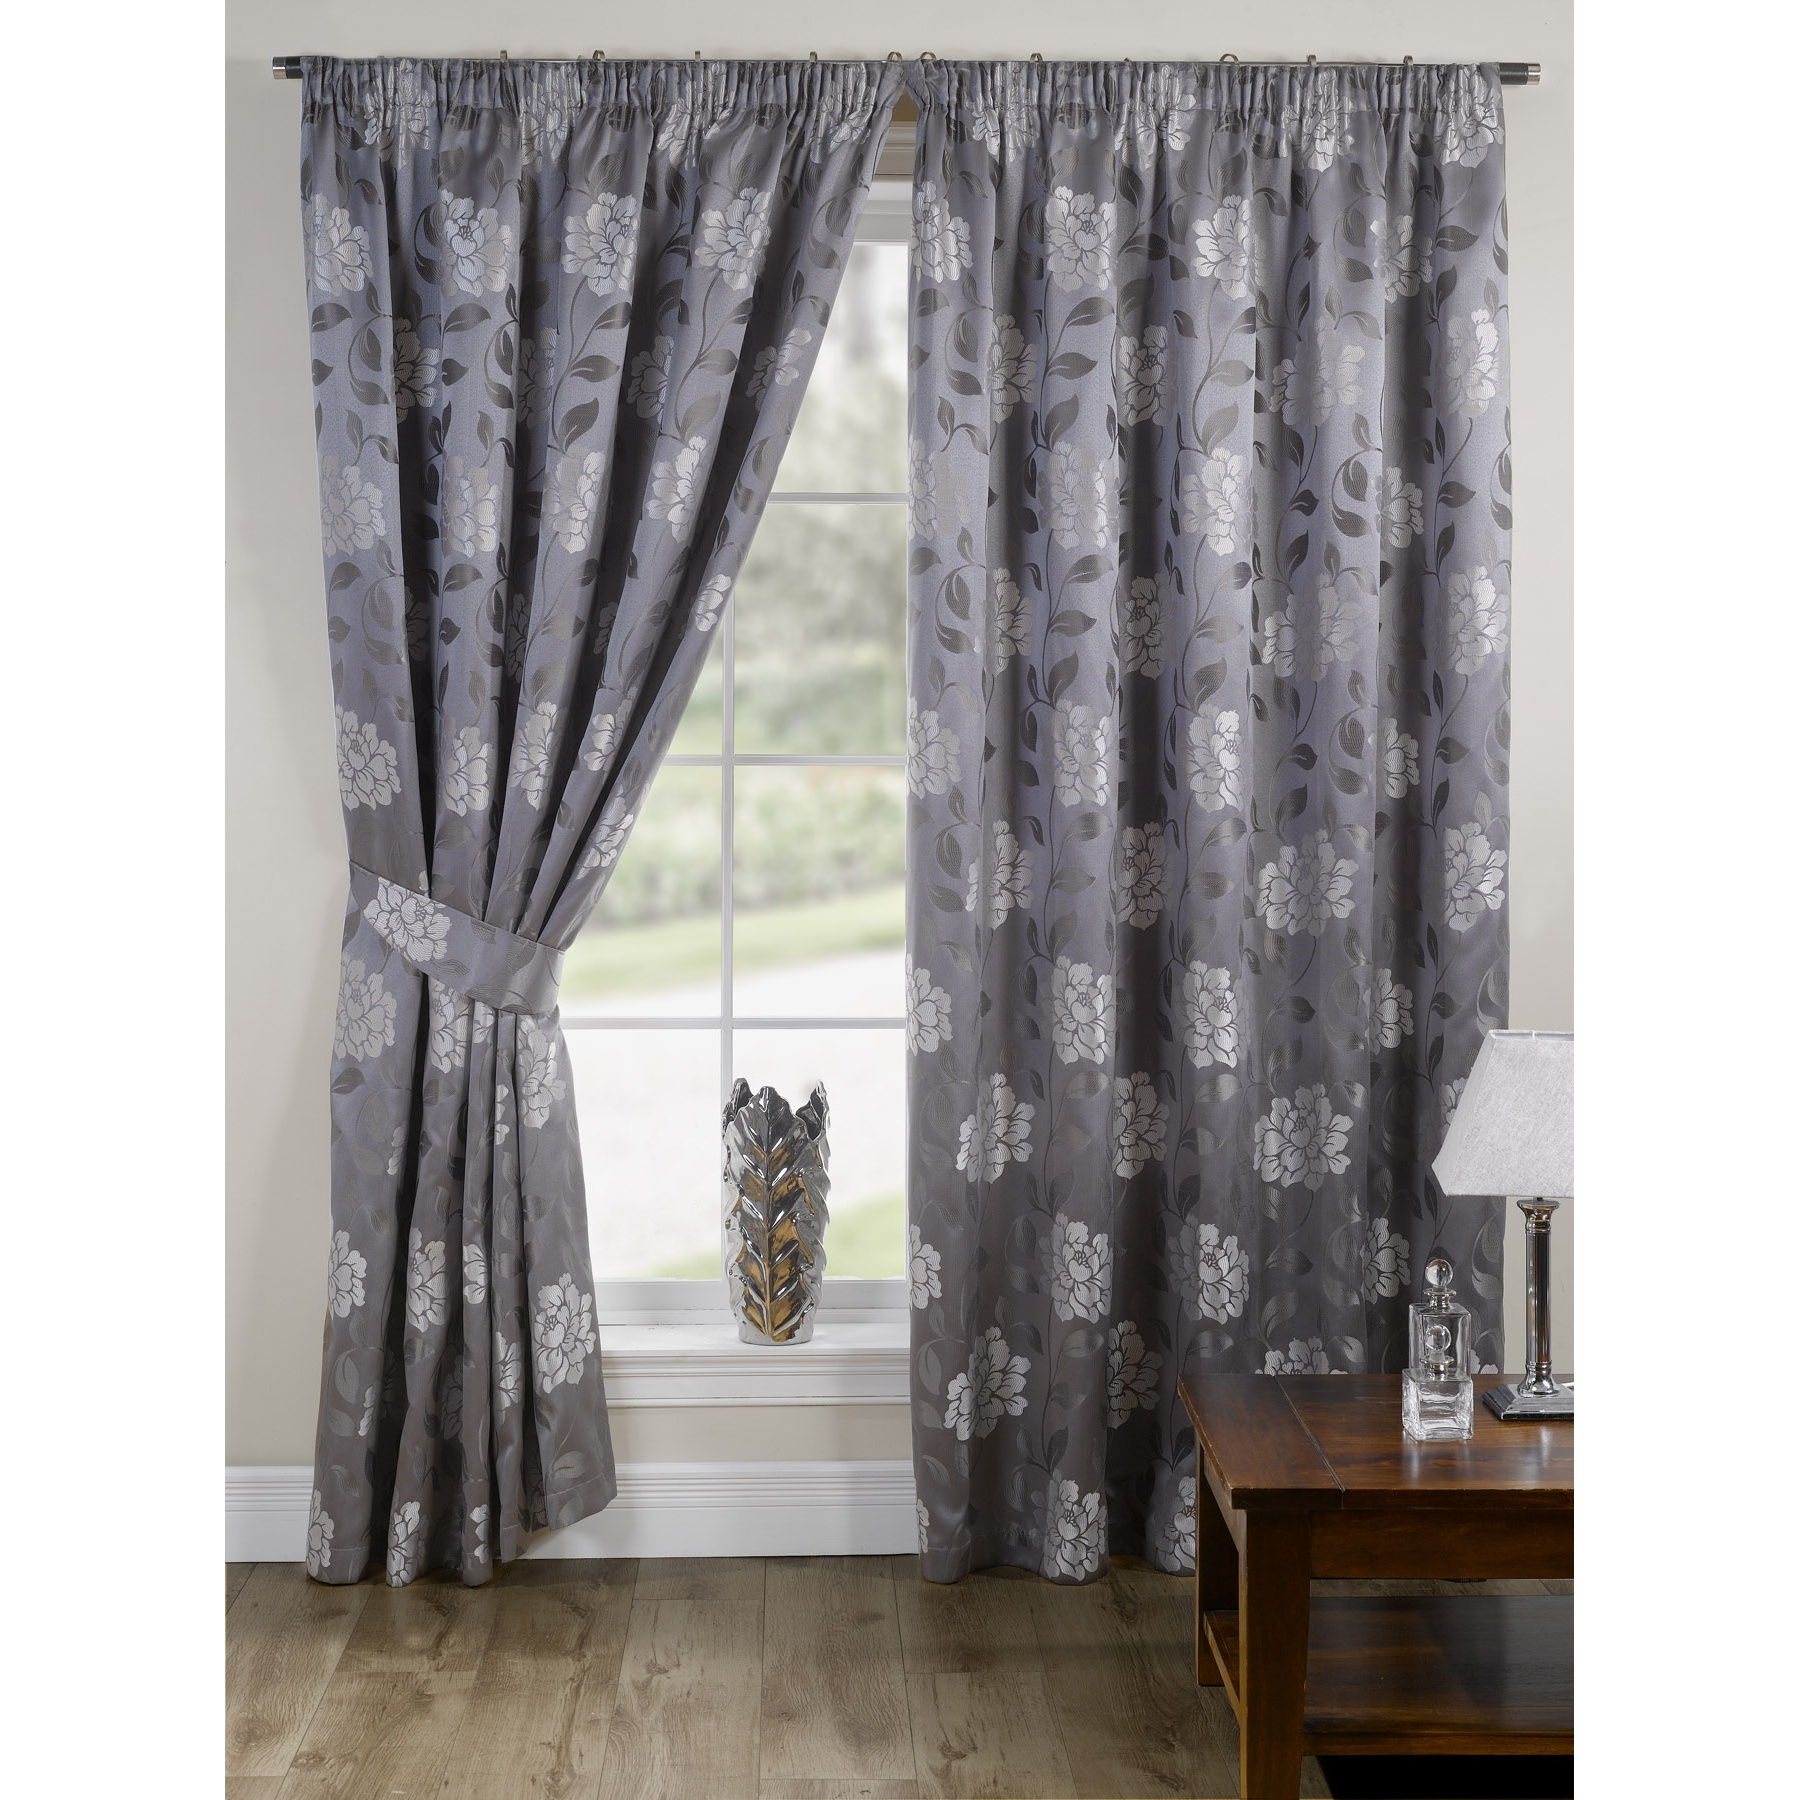 Frilled Kitchen Curtains Lined: Davina Fully Lined Ready Made Floral Patterned Curtains